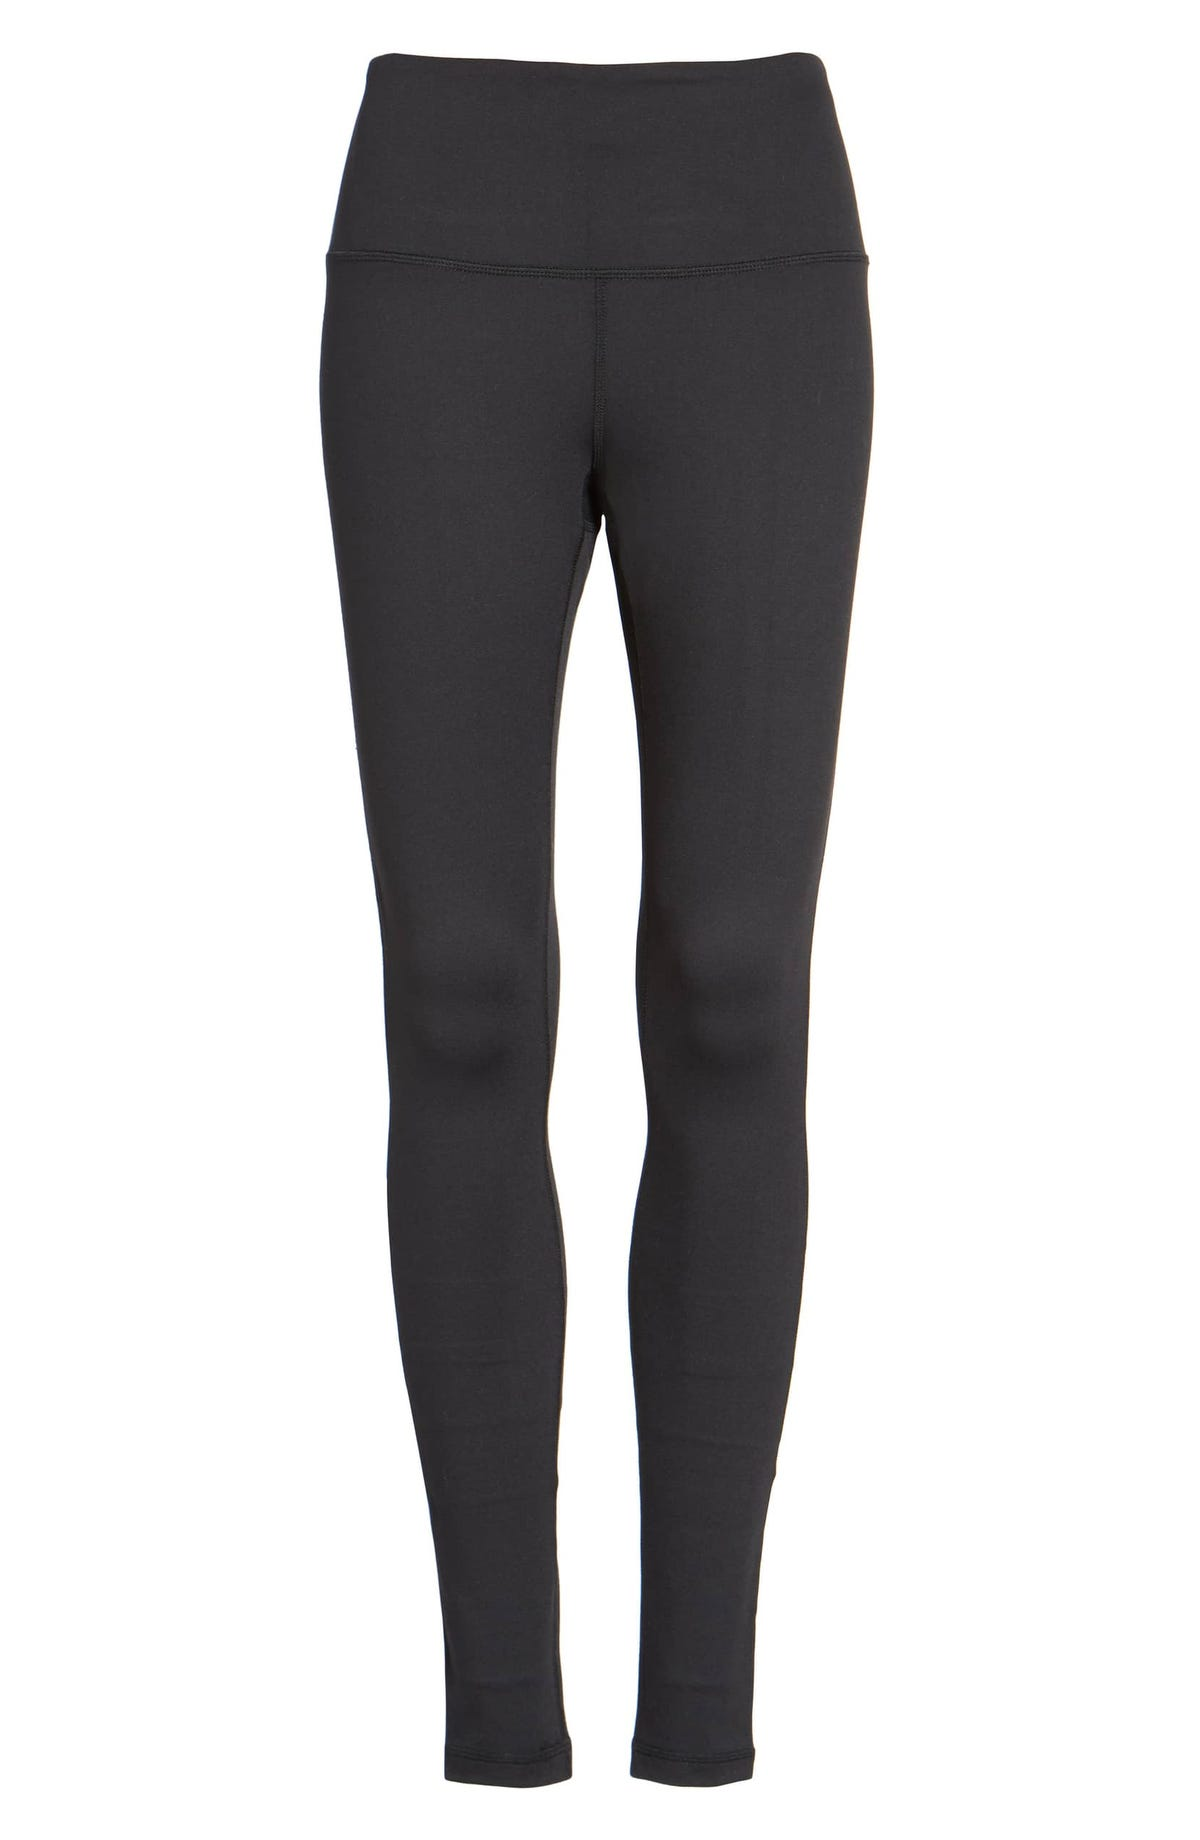 classic style watch offer discounts Best Black Leggings - Reviews On Top Brands & Styles